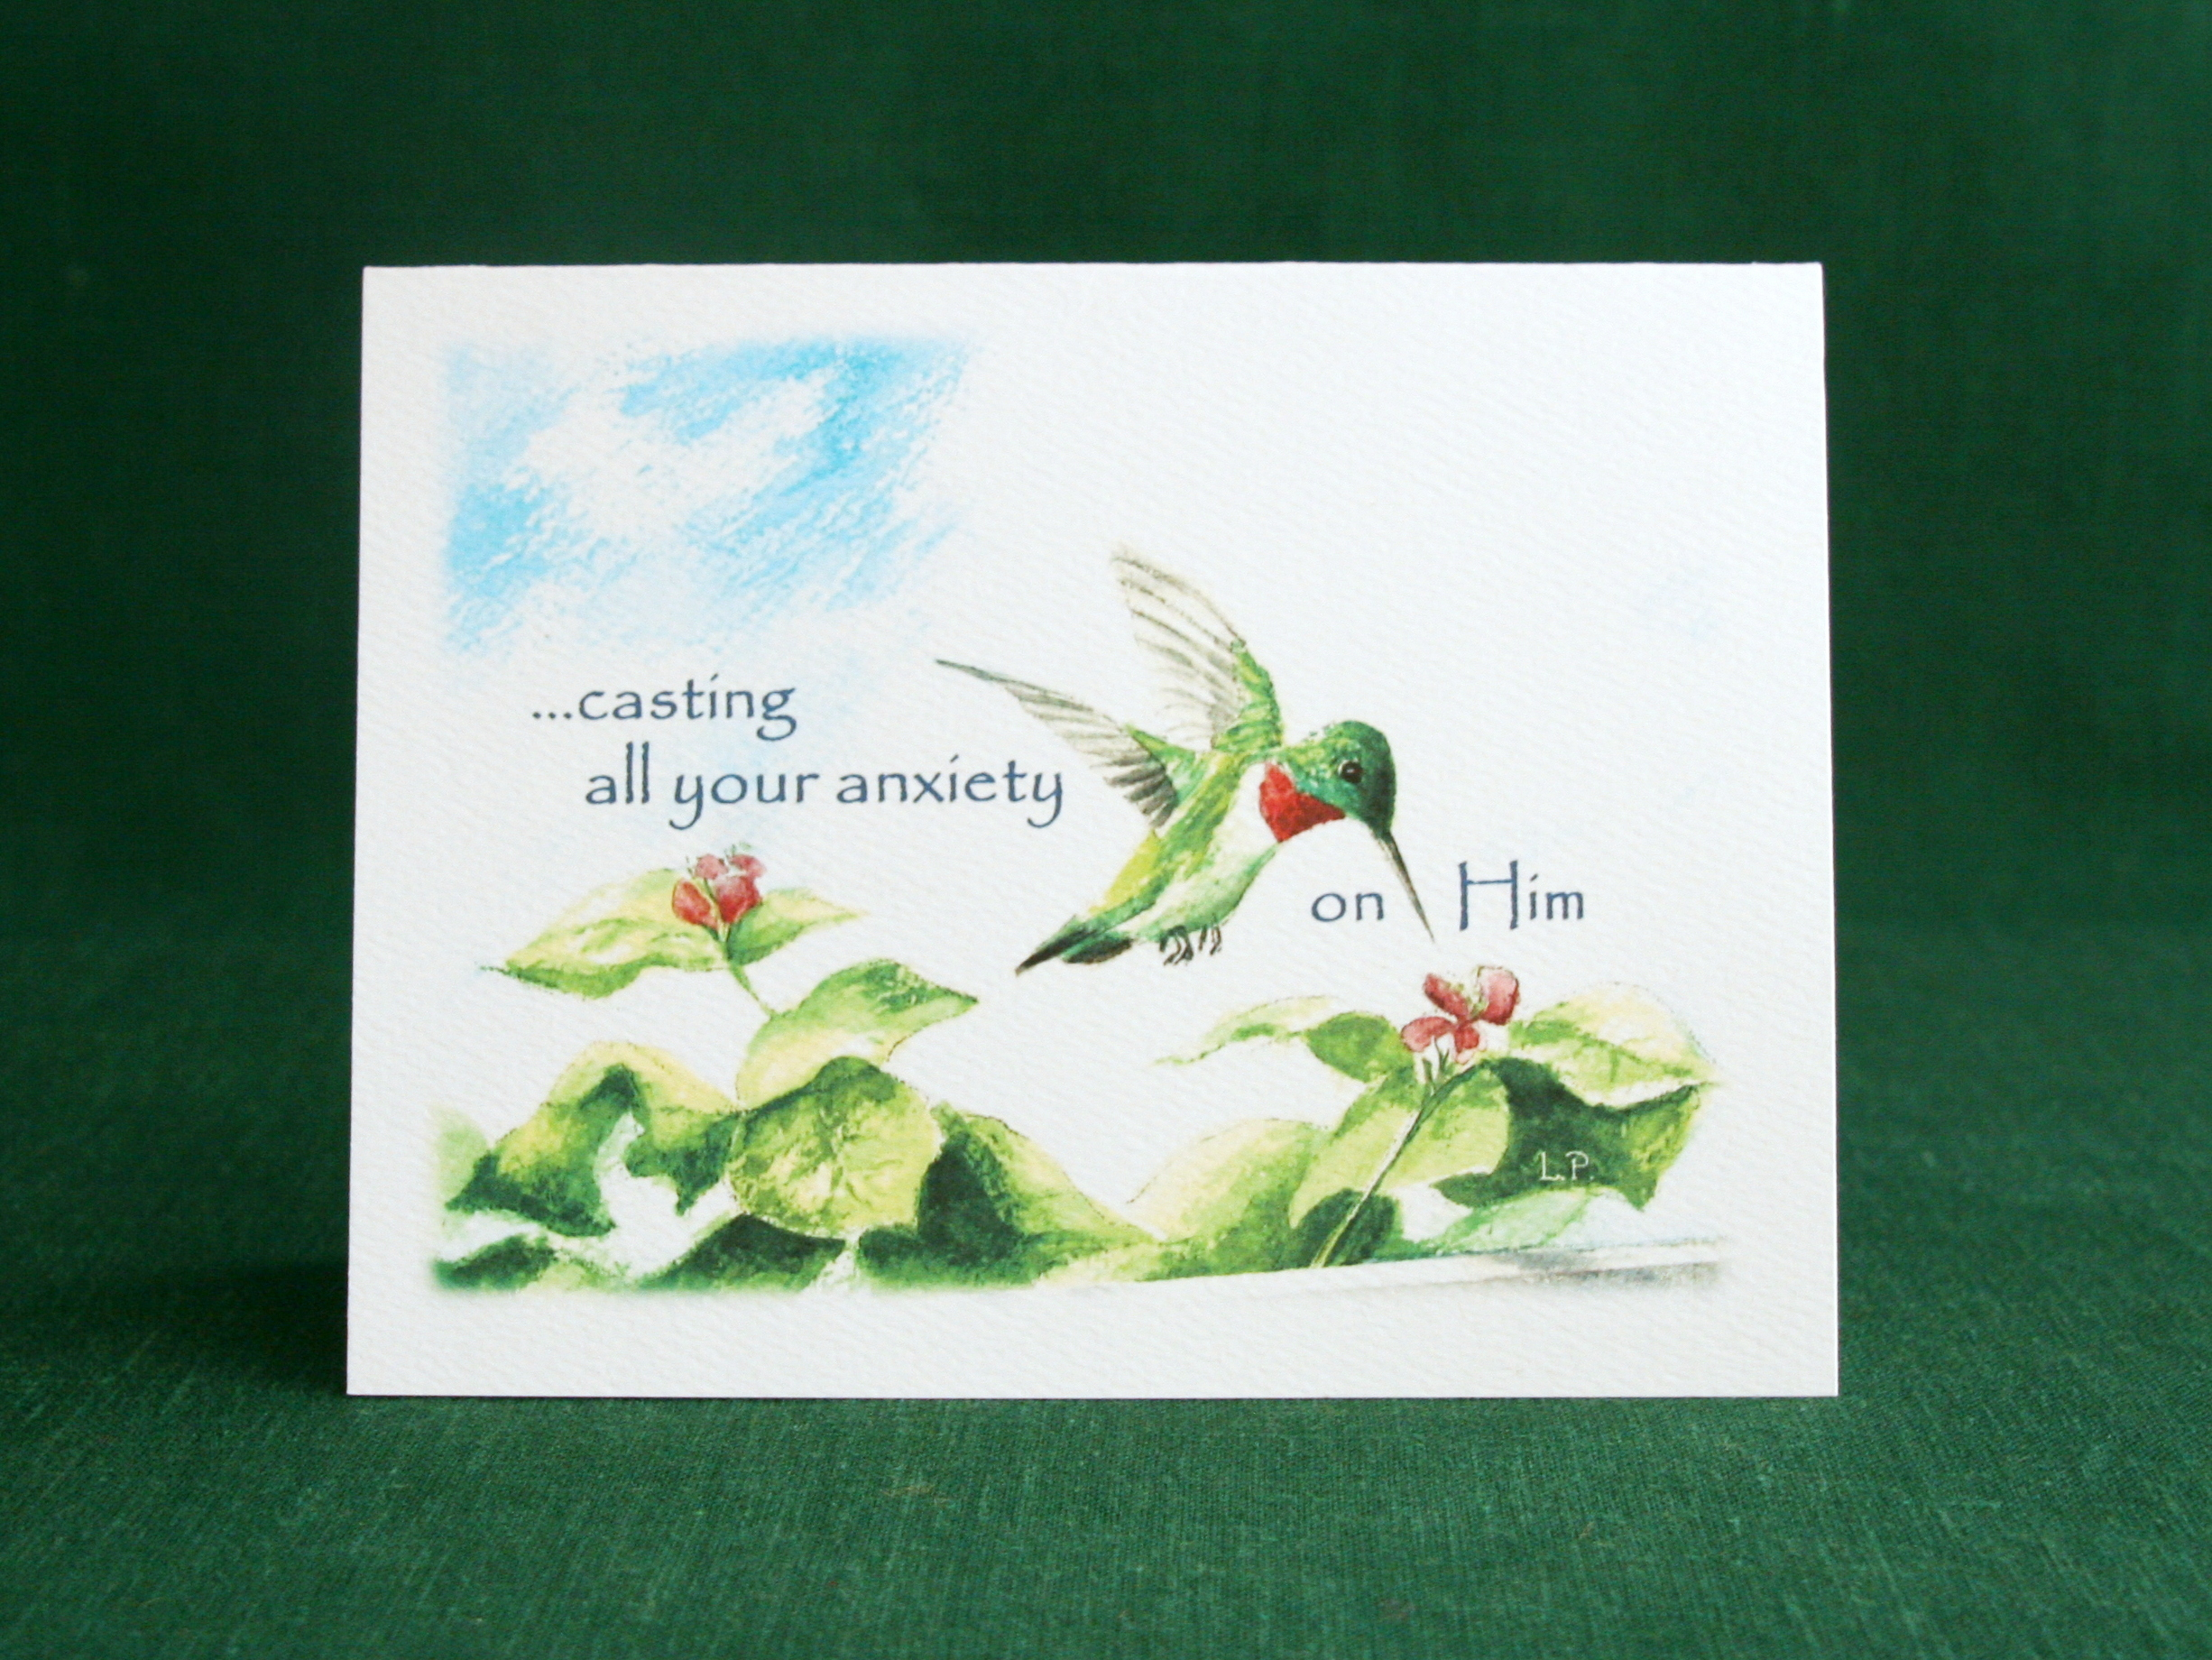 INSIDE: ...because He cares for you. 1 Peter 5:7